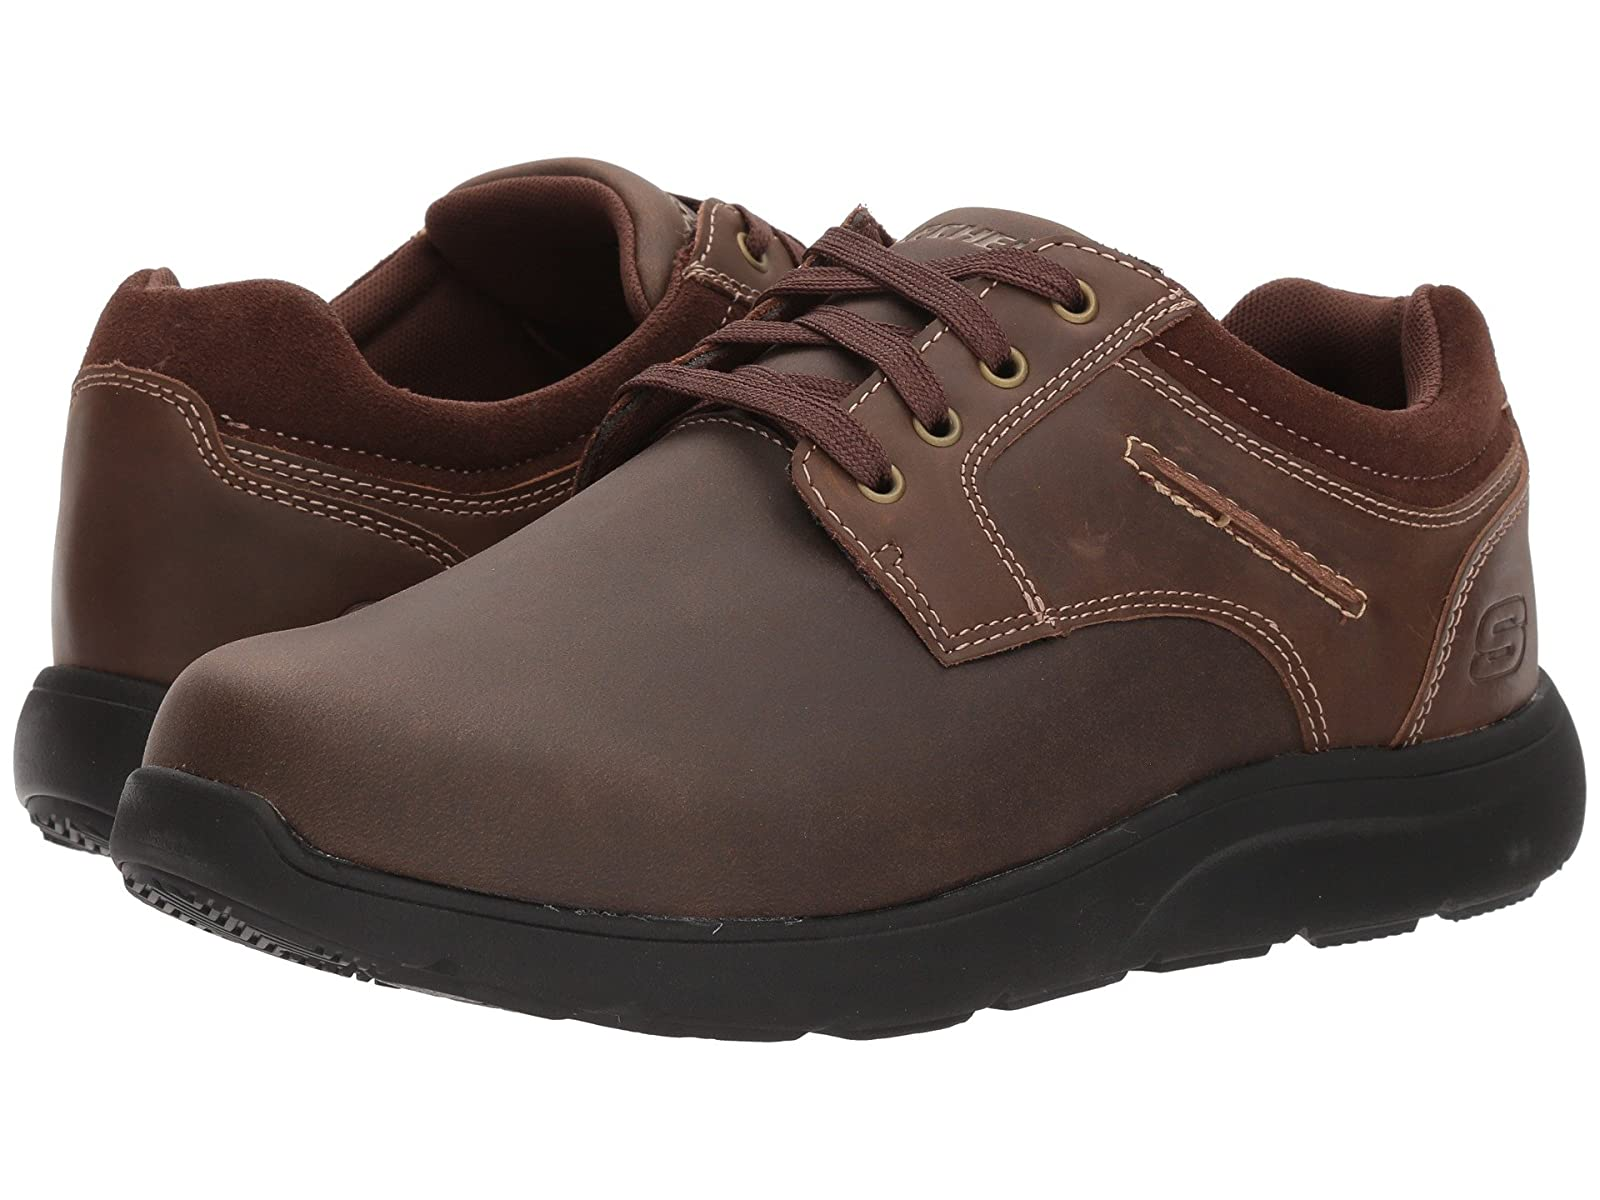 SKECHERS Montego EleventCheap and distinctive eye-catching shoes